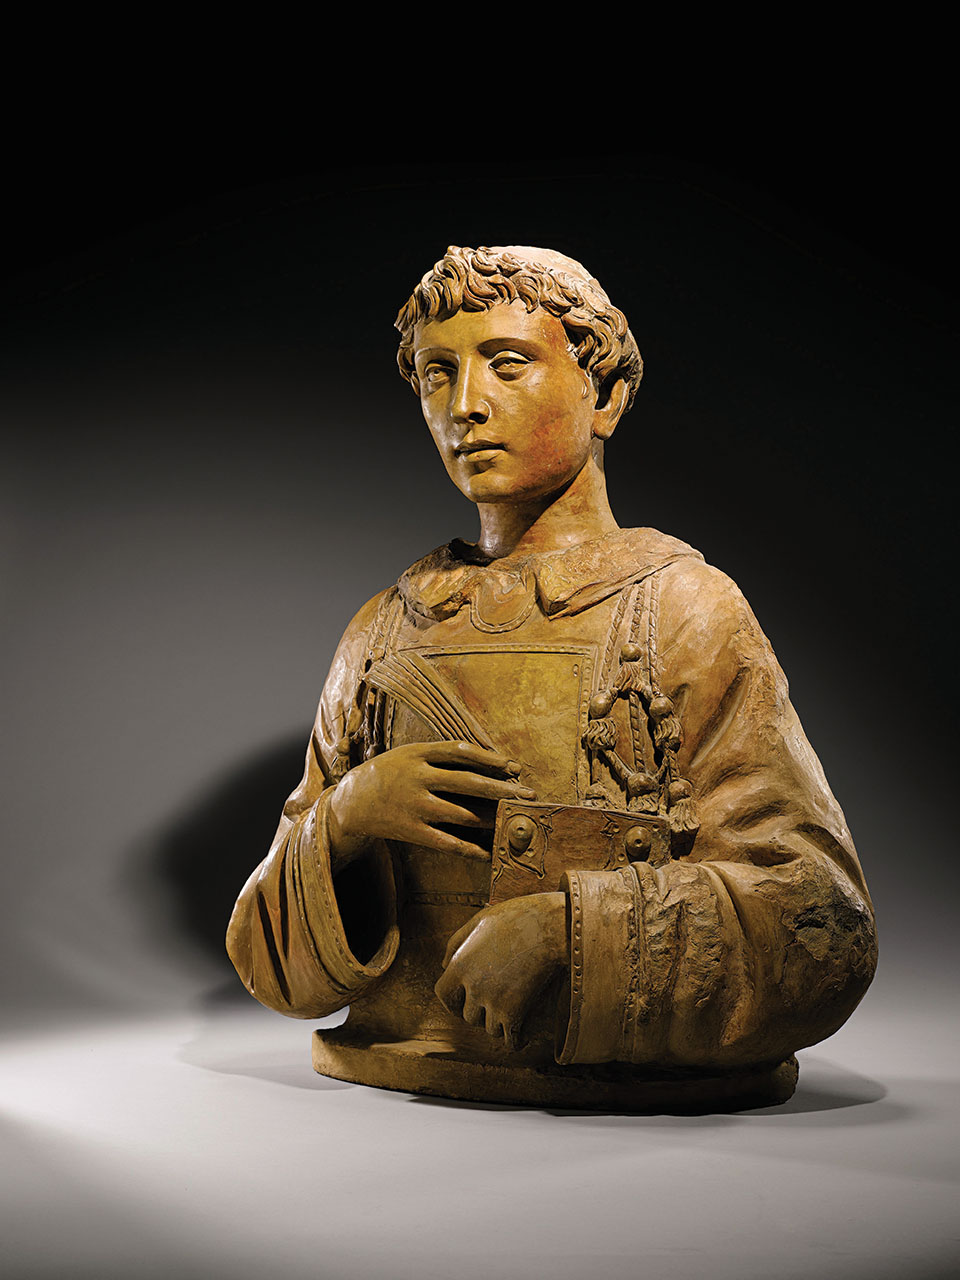 Donatello, San Lorenzo, around 1440, terracotta, Collection of Peter Silverman and Kathleen Onorato